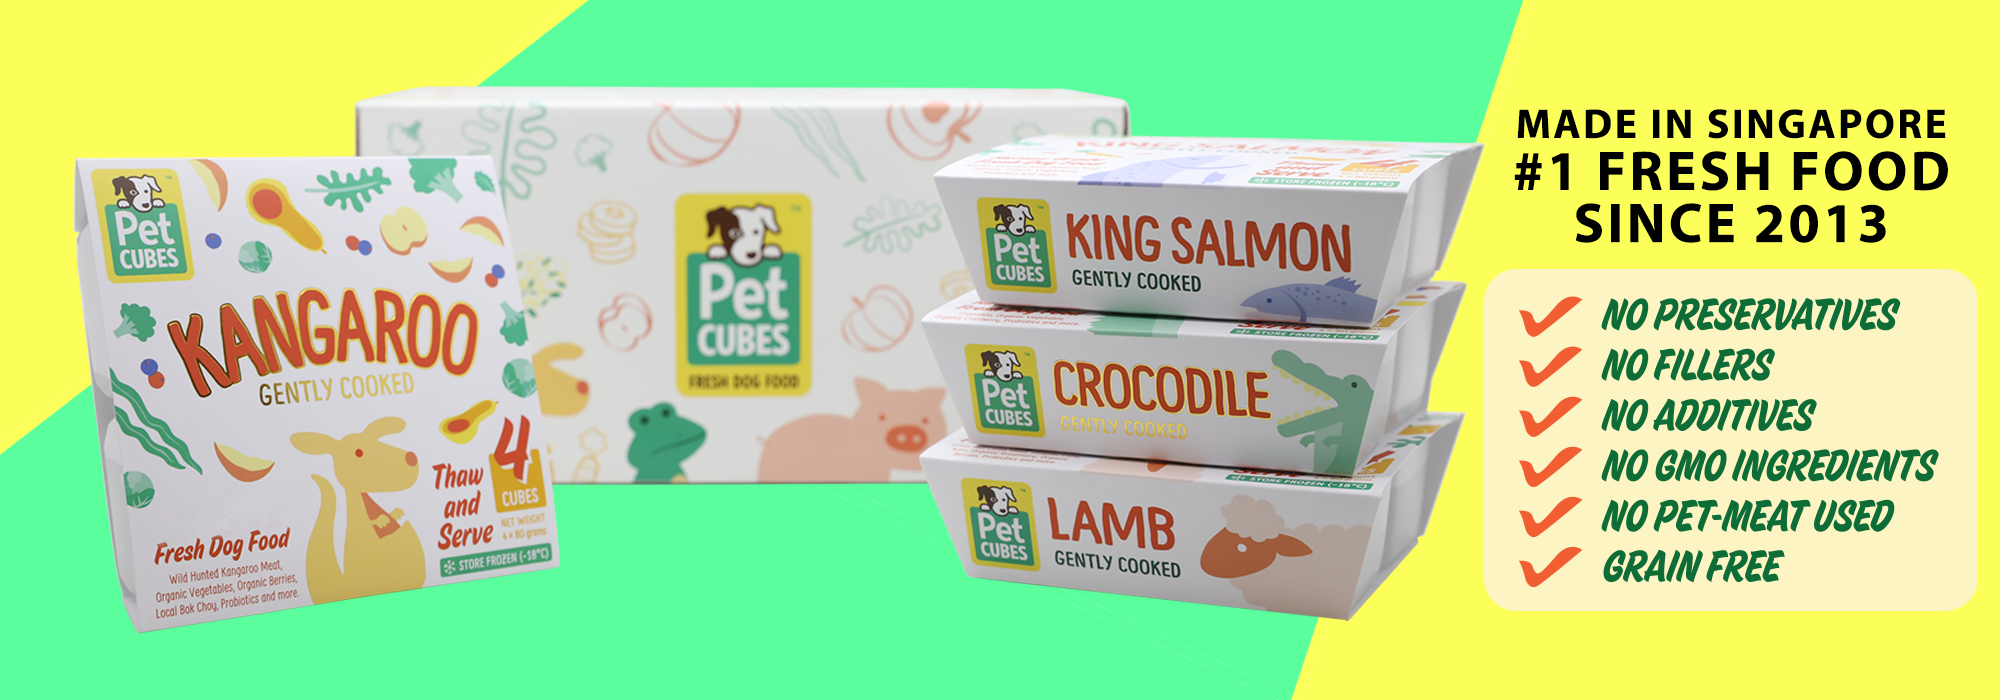 Pet Cube Pet Food and Treat banner